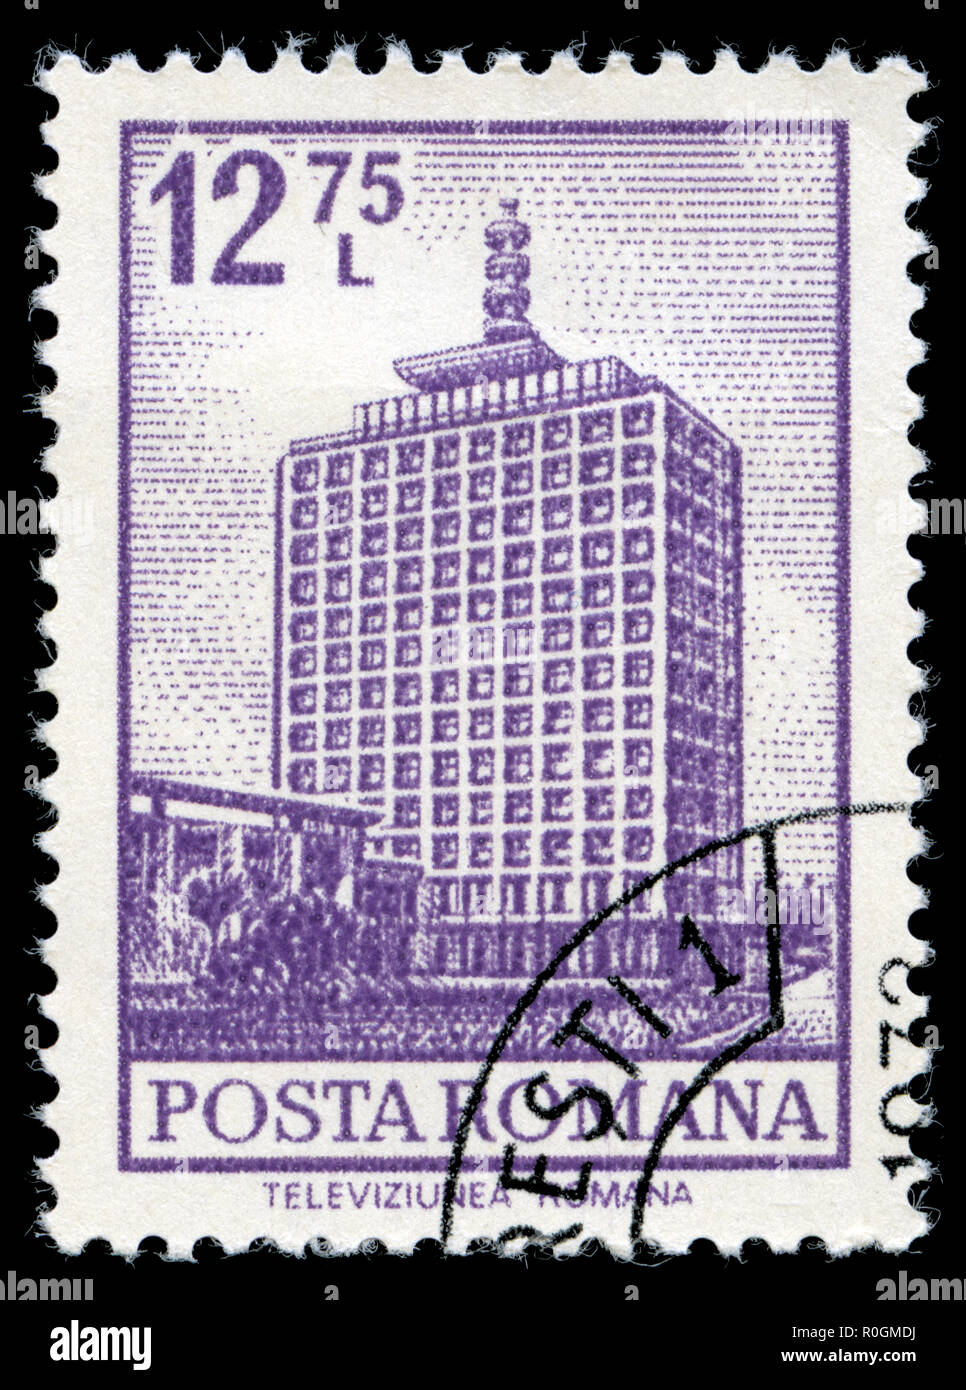 Postage stamp from Romania in the Definitives - Buildings series issued in 1972 - Stock Image